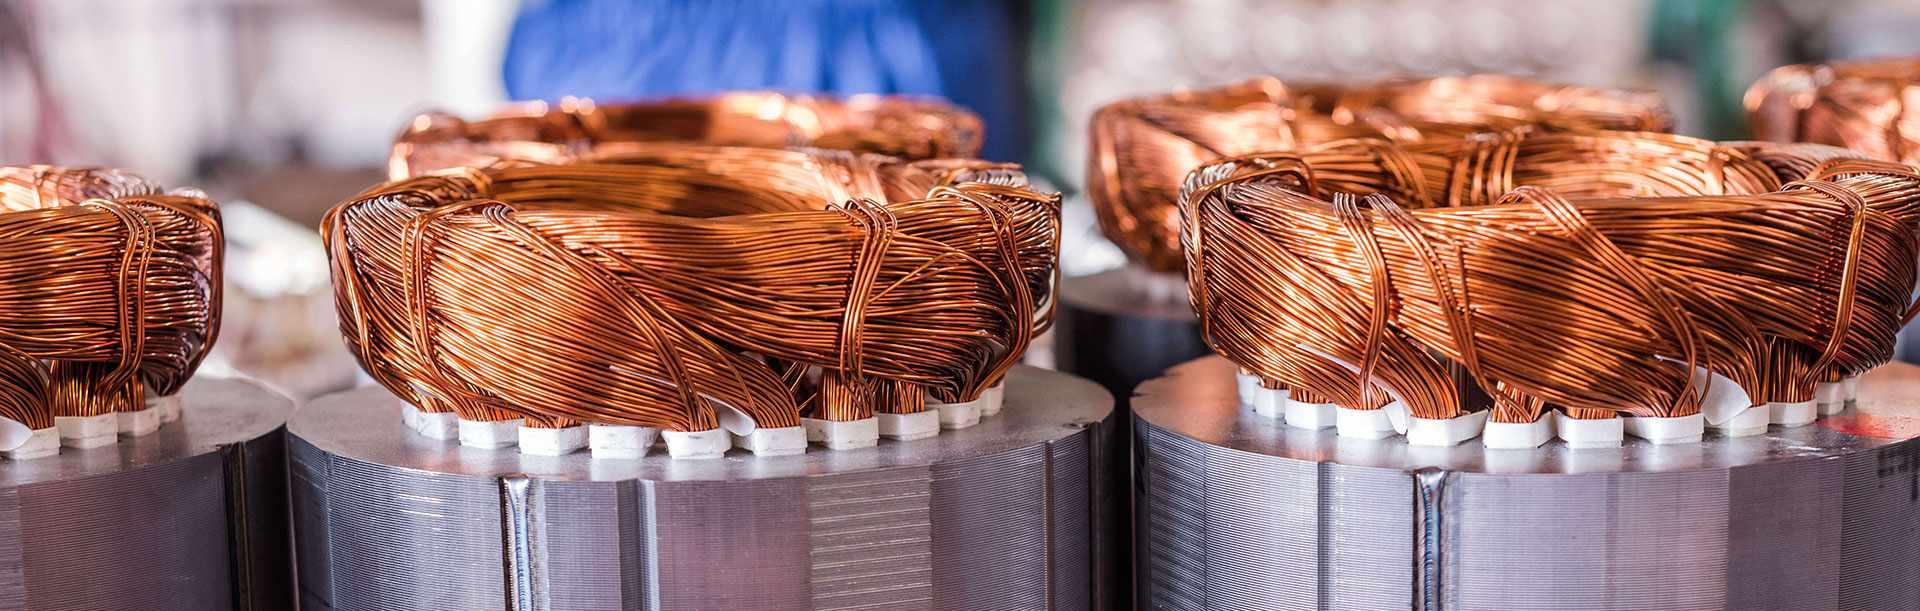 Copper winding